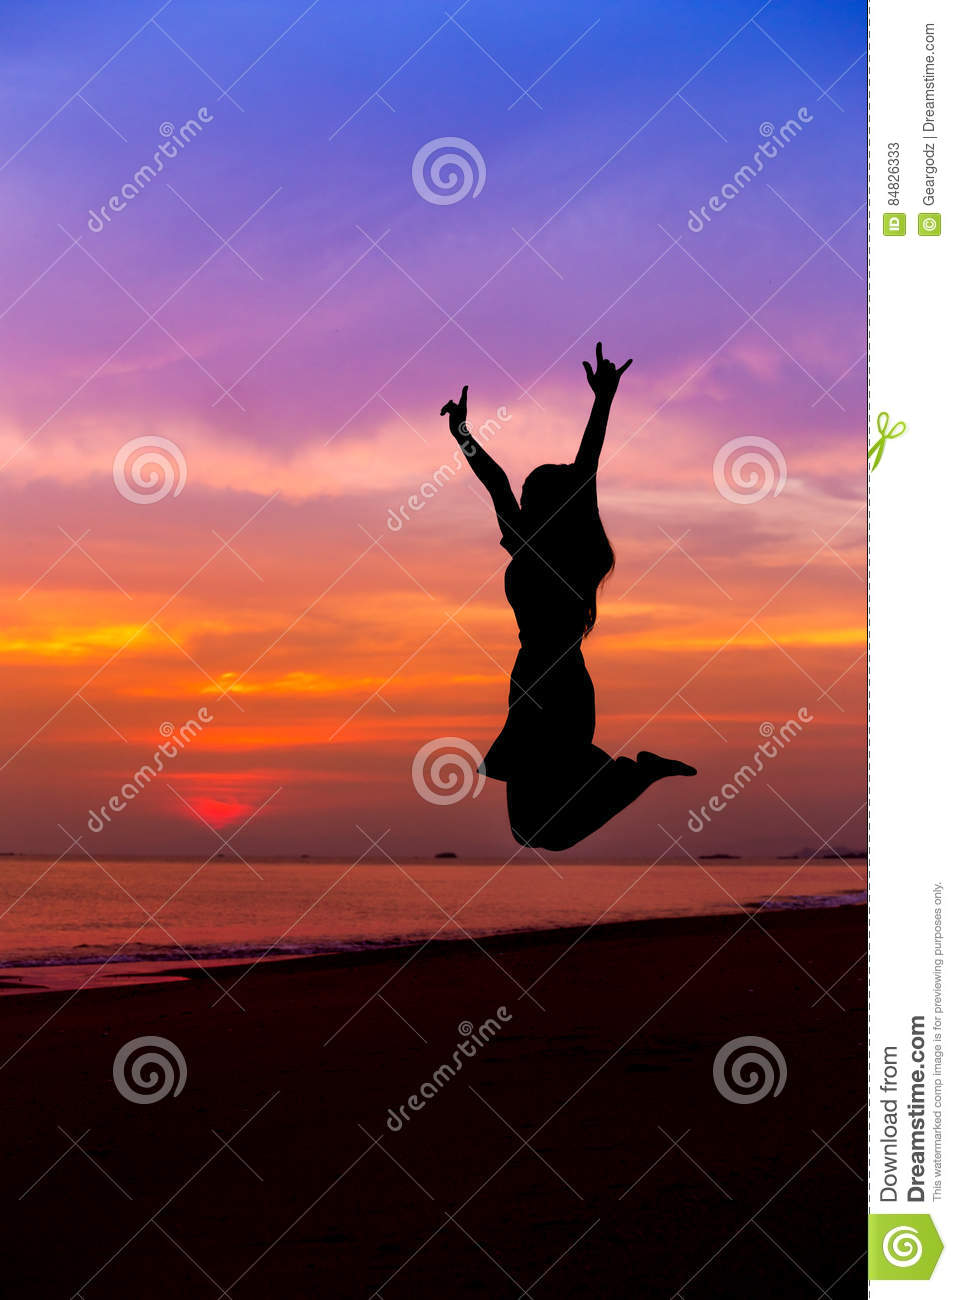 Silhouette of woman jumping with hands up and showing I LOVE YOU